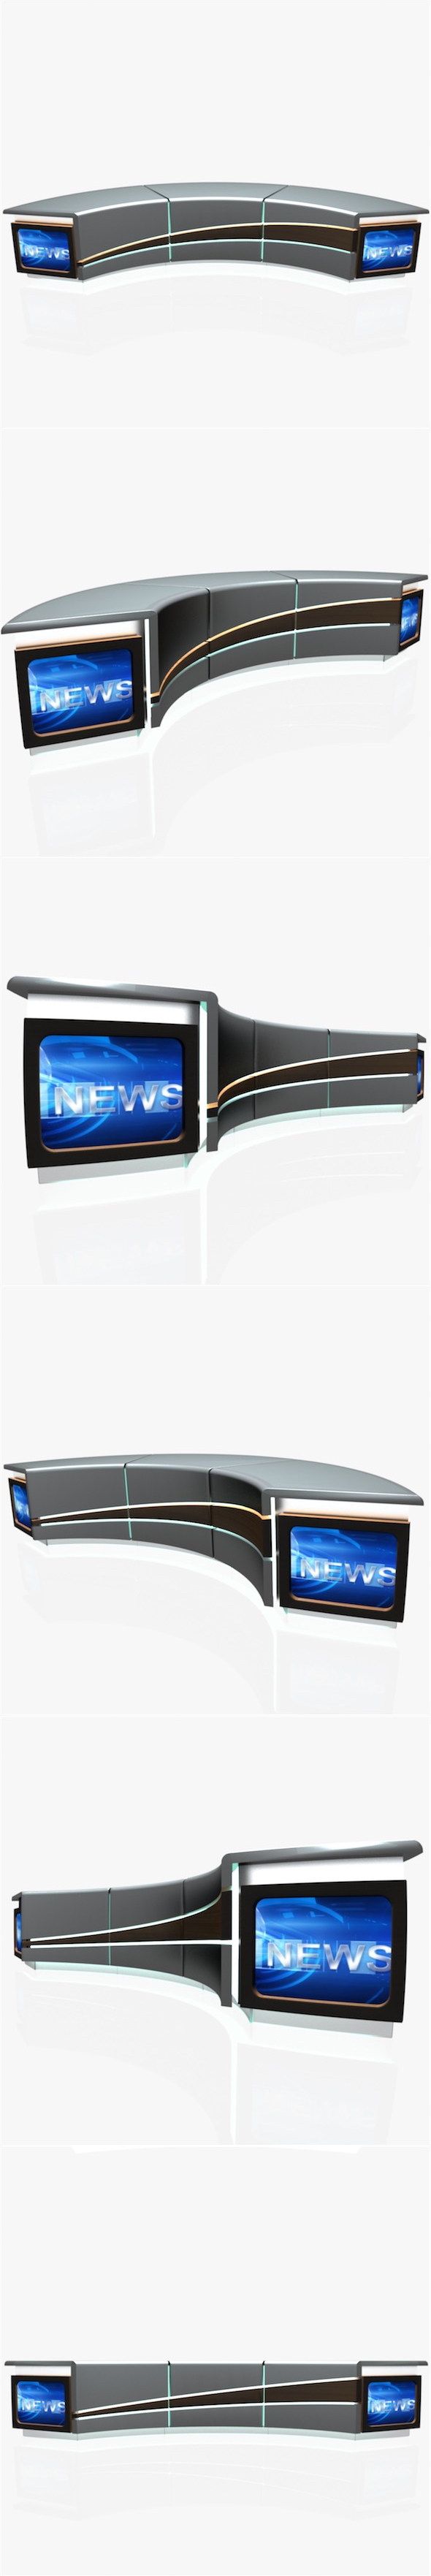 Tv Studio News Desk 004 - 3DOcean Item for Sale